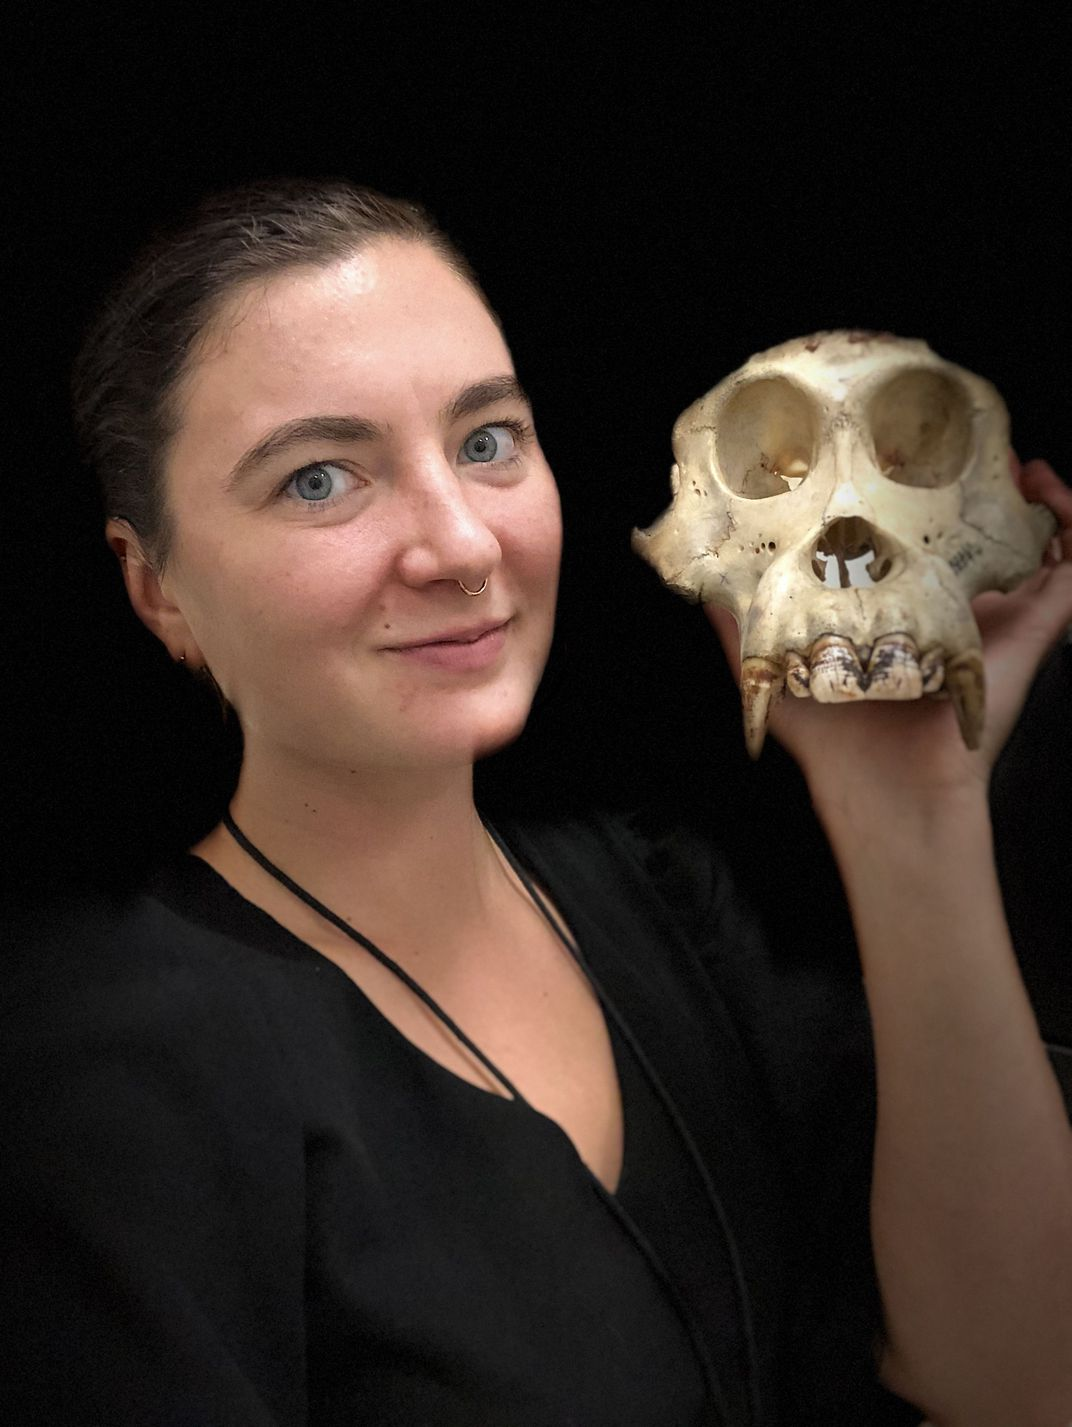 A person holds a great ape skull next to their head.